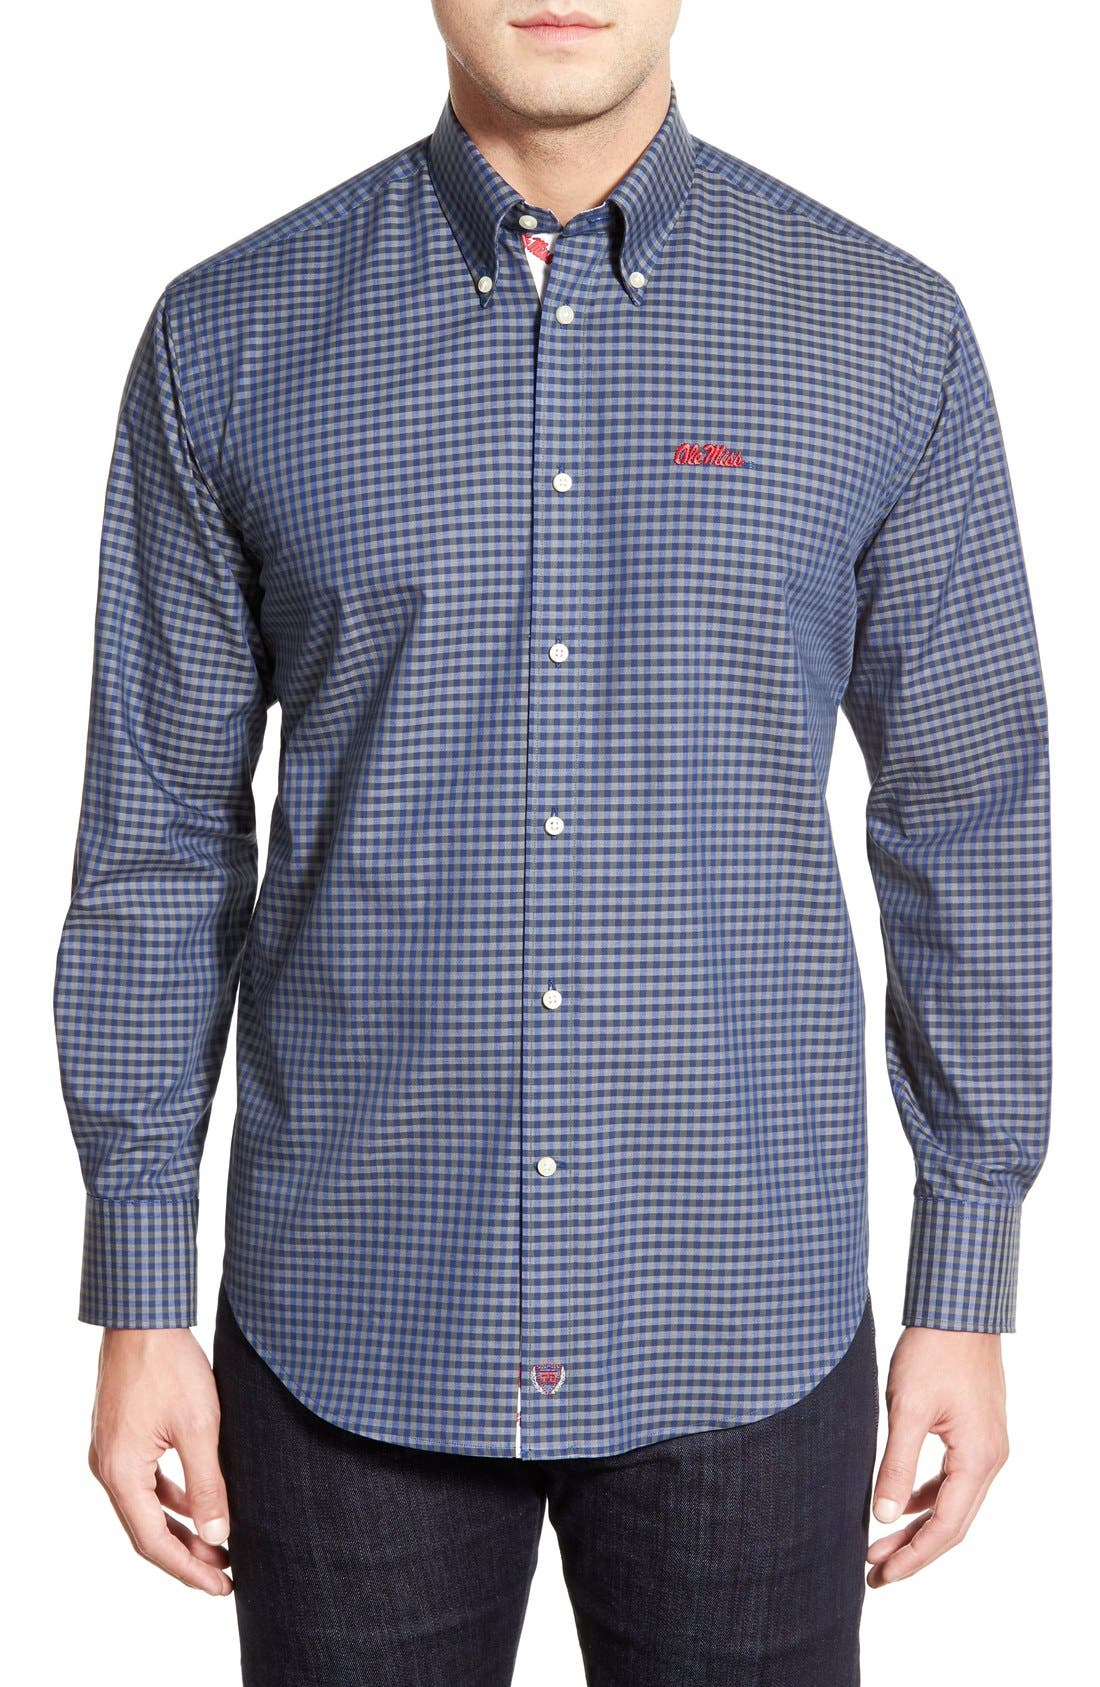 Thomas Dean 'Ole Miss Rebels' Regular Fit Long Sleeve Gingham Sport Shirt